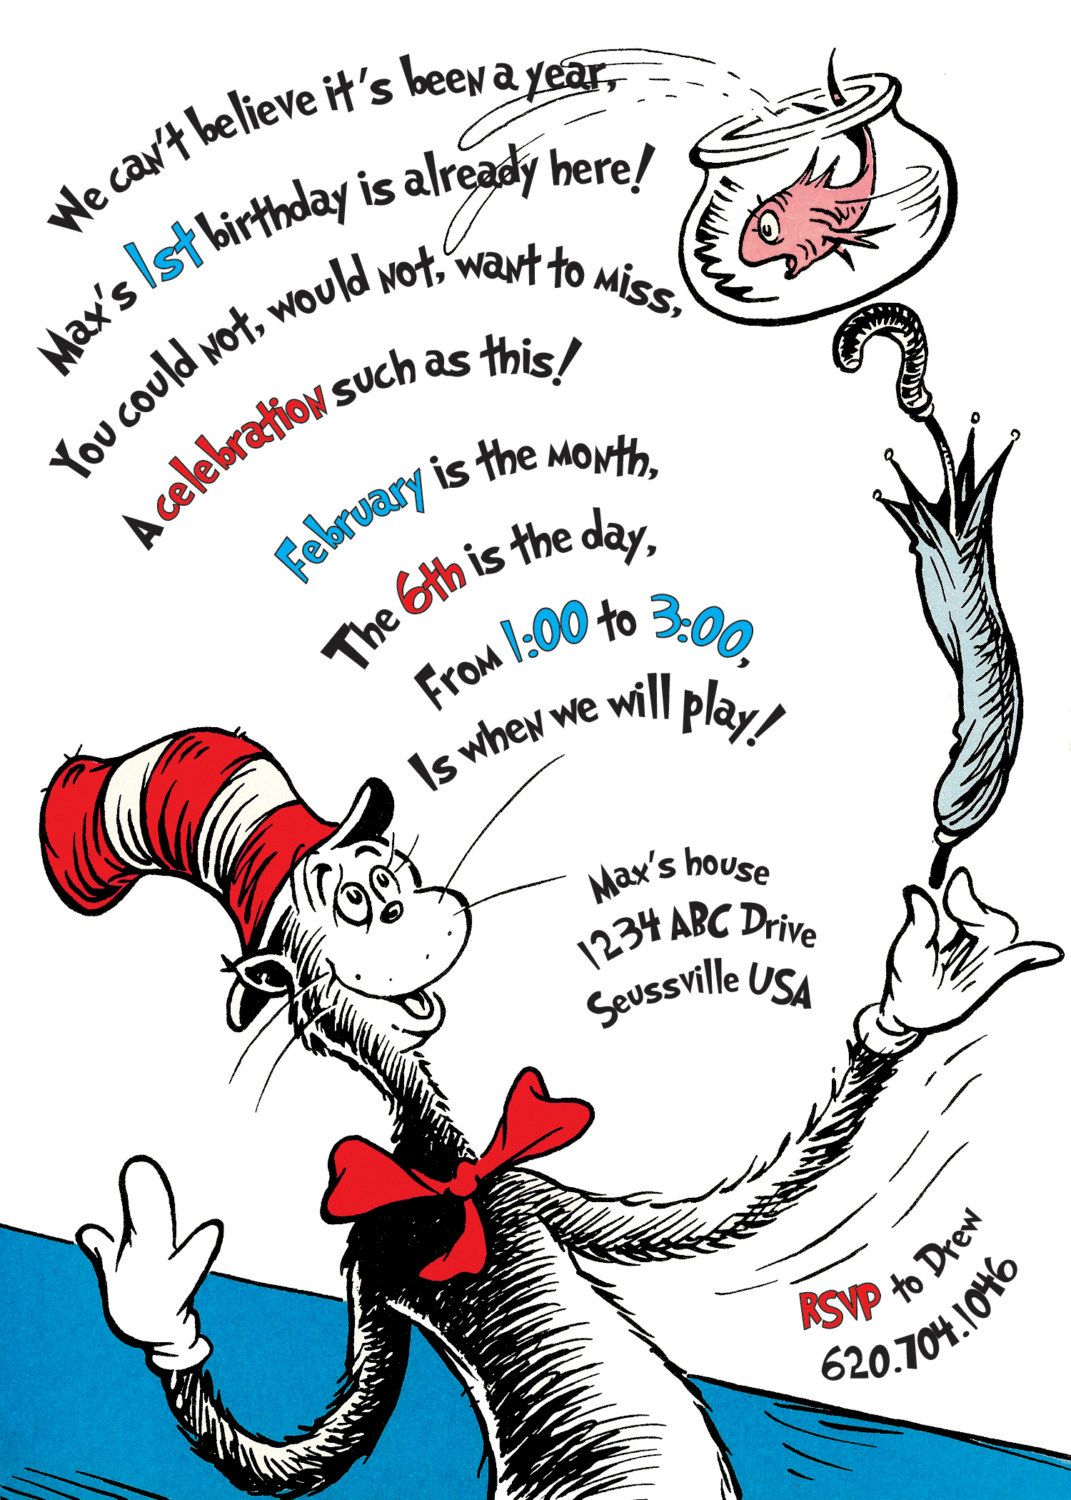 The Cat In The Hat Birthday Invitation Printable 1st Birthday Invitations Dr Seuss Birthday Party First Birthday Invitations